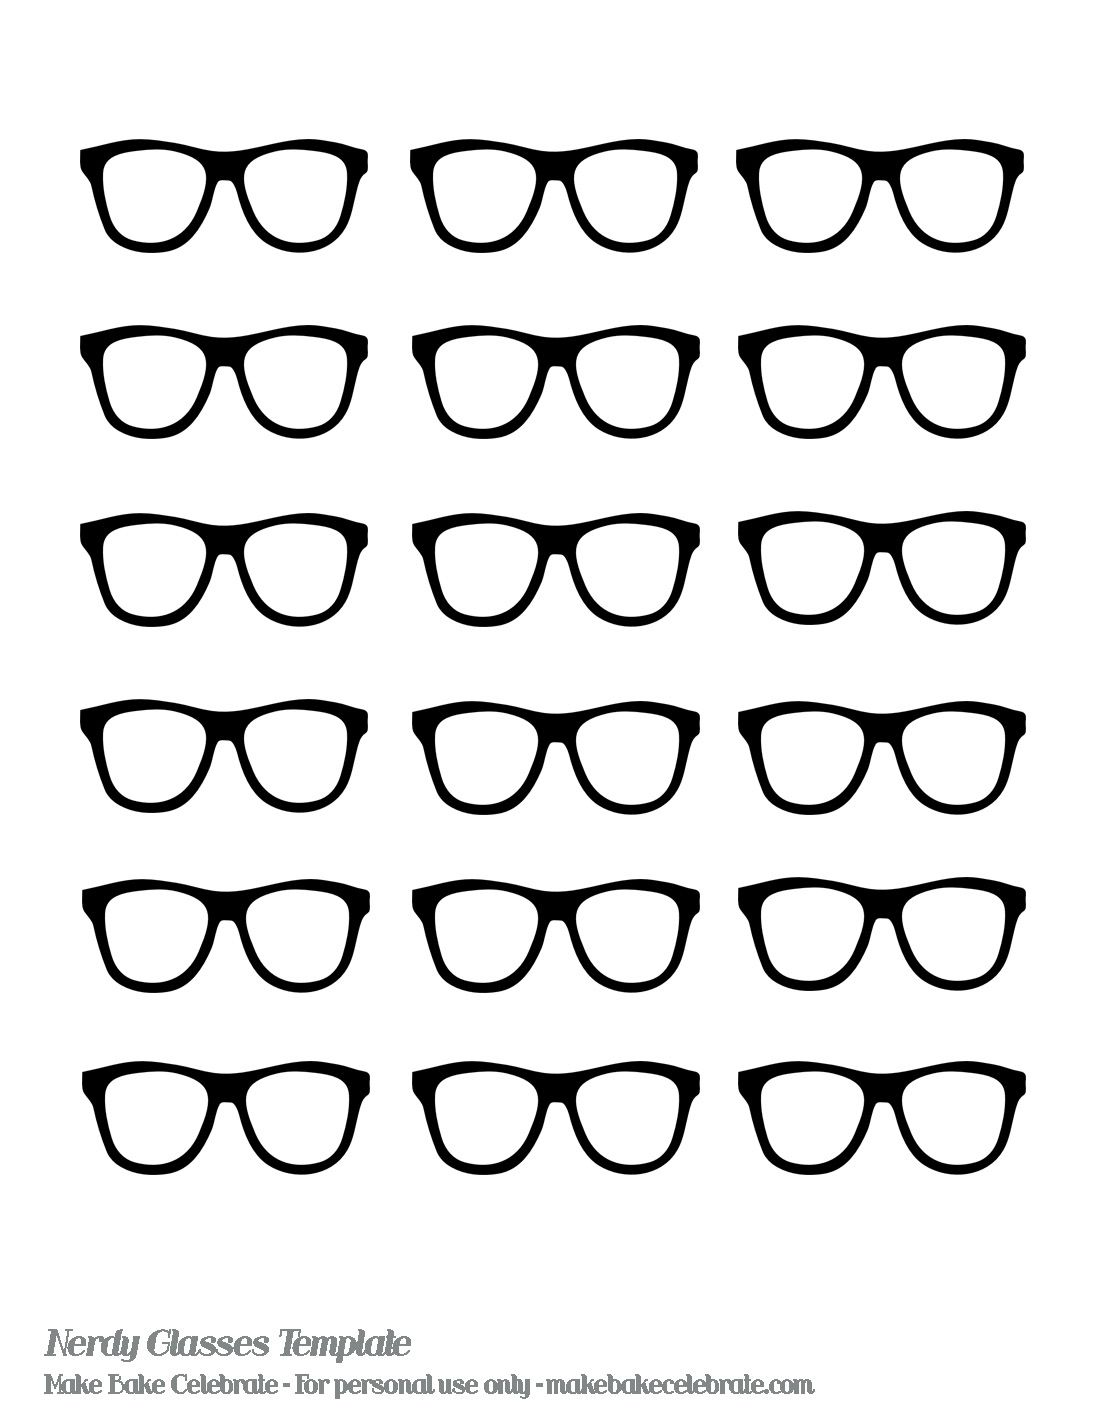 Nerd Glasses Template